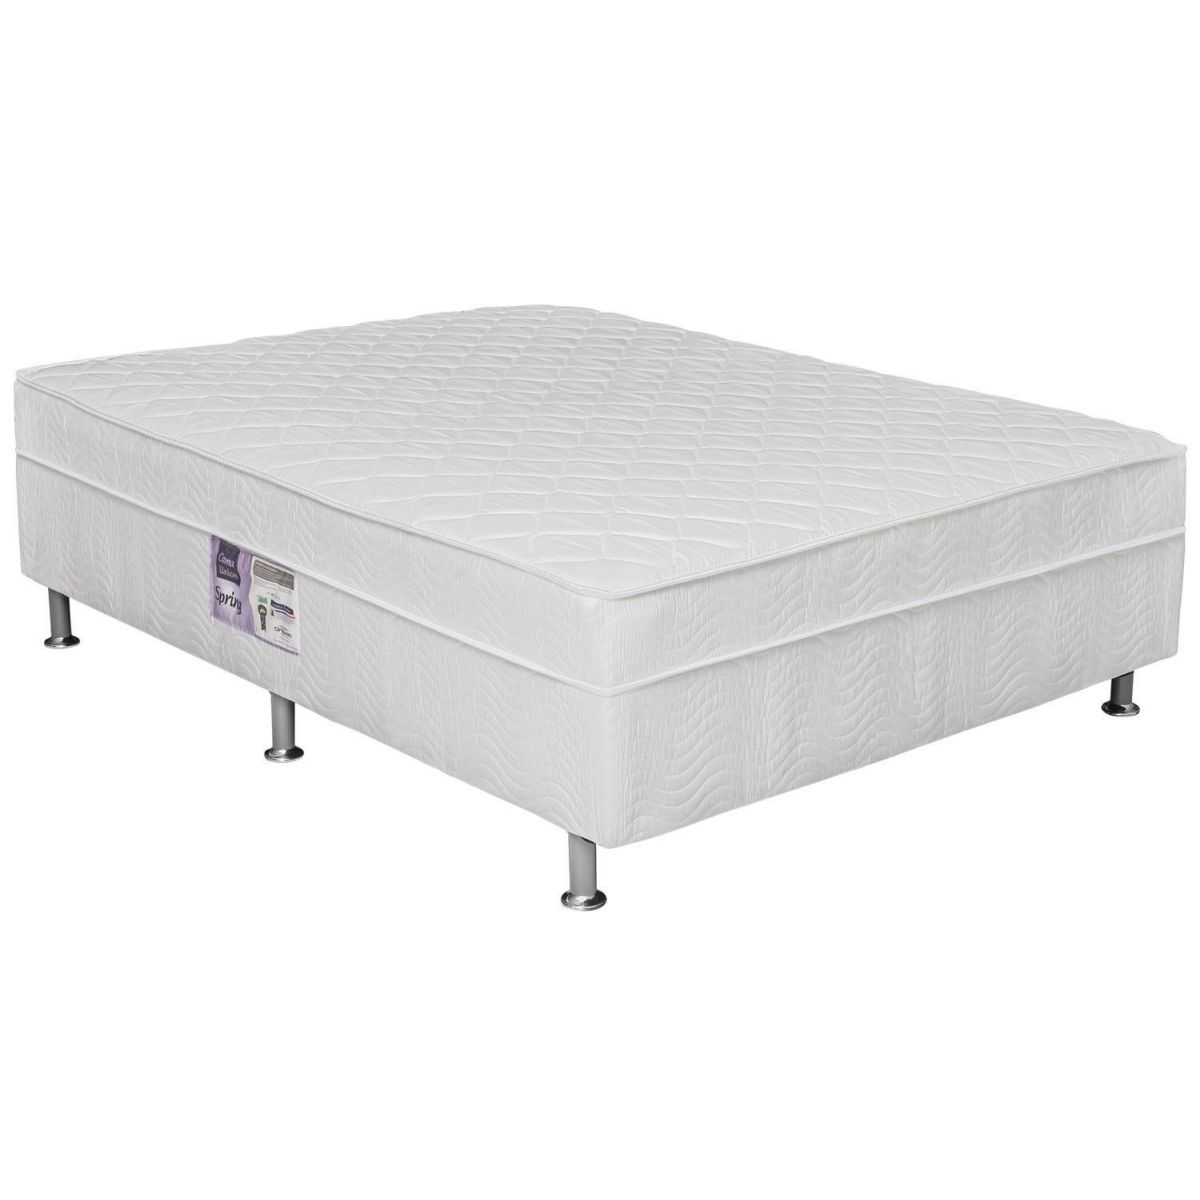 7348514f0 CAMA BOX QUEEN SIZE SIMPLES MOLA BONNEL COM PILLOW-TOP - Império Mendes